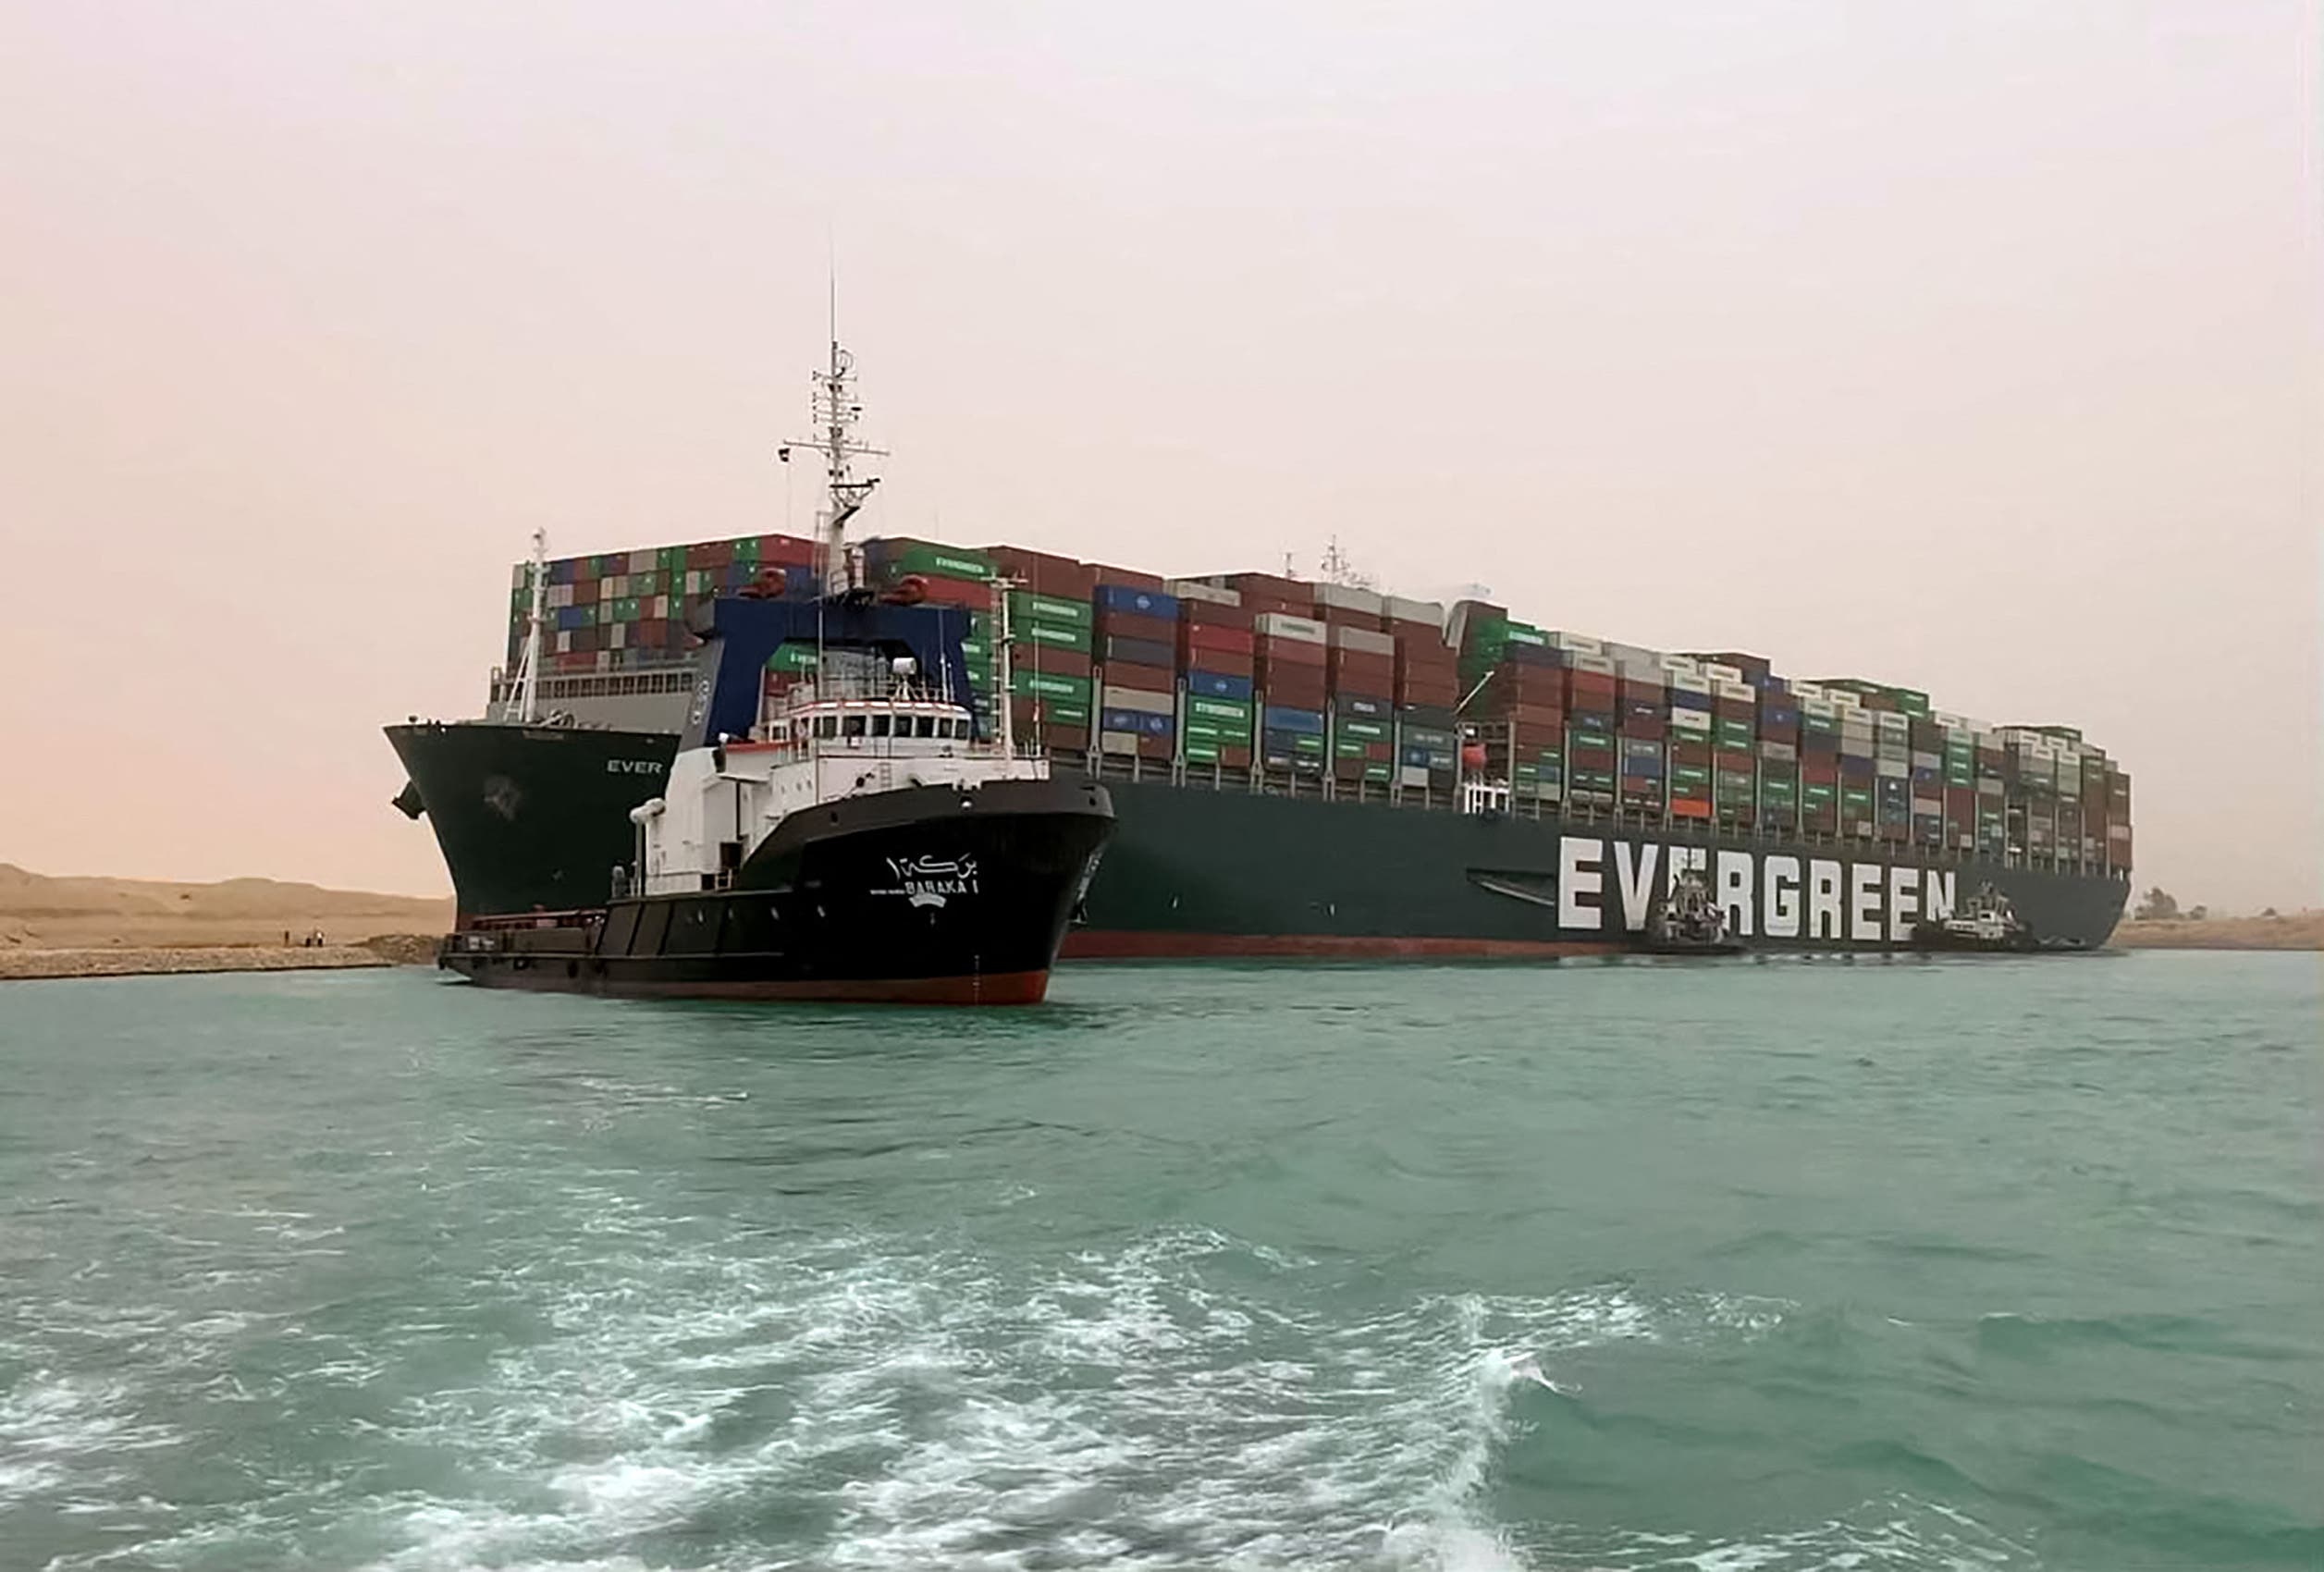 The Taiwan-owned MV Ever Given (Evergreen), a 400-meter- (1,300-foot-) long and 59-meter wide vessel, lodged sideways and impeding all traffic across the waterway of Egypt's Suez Canal. (AFP)